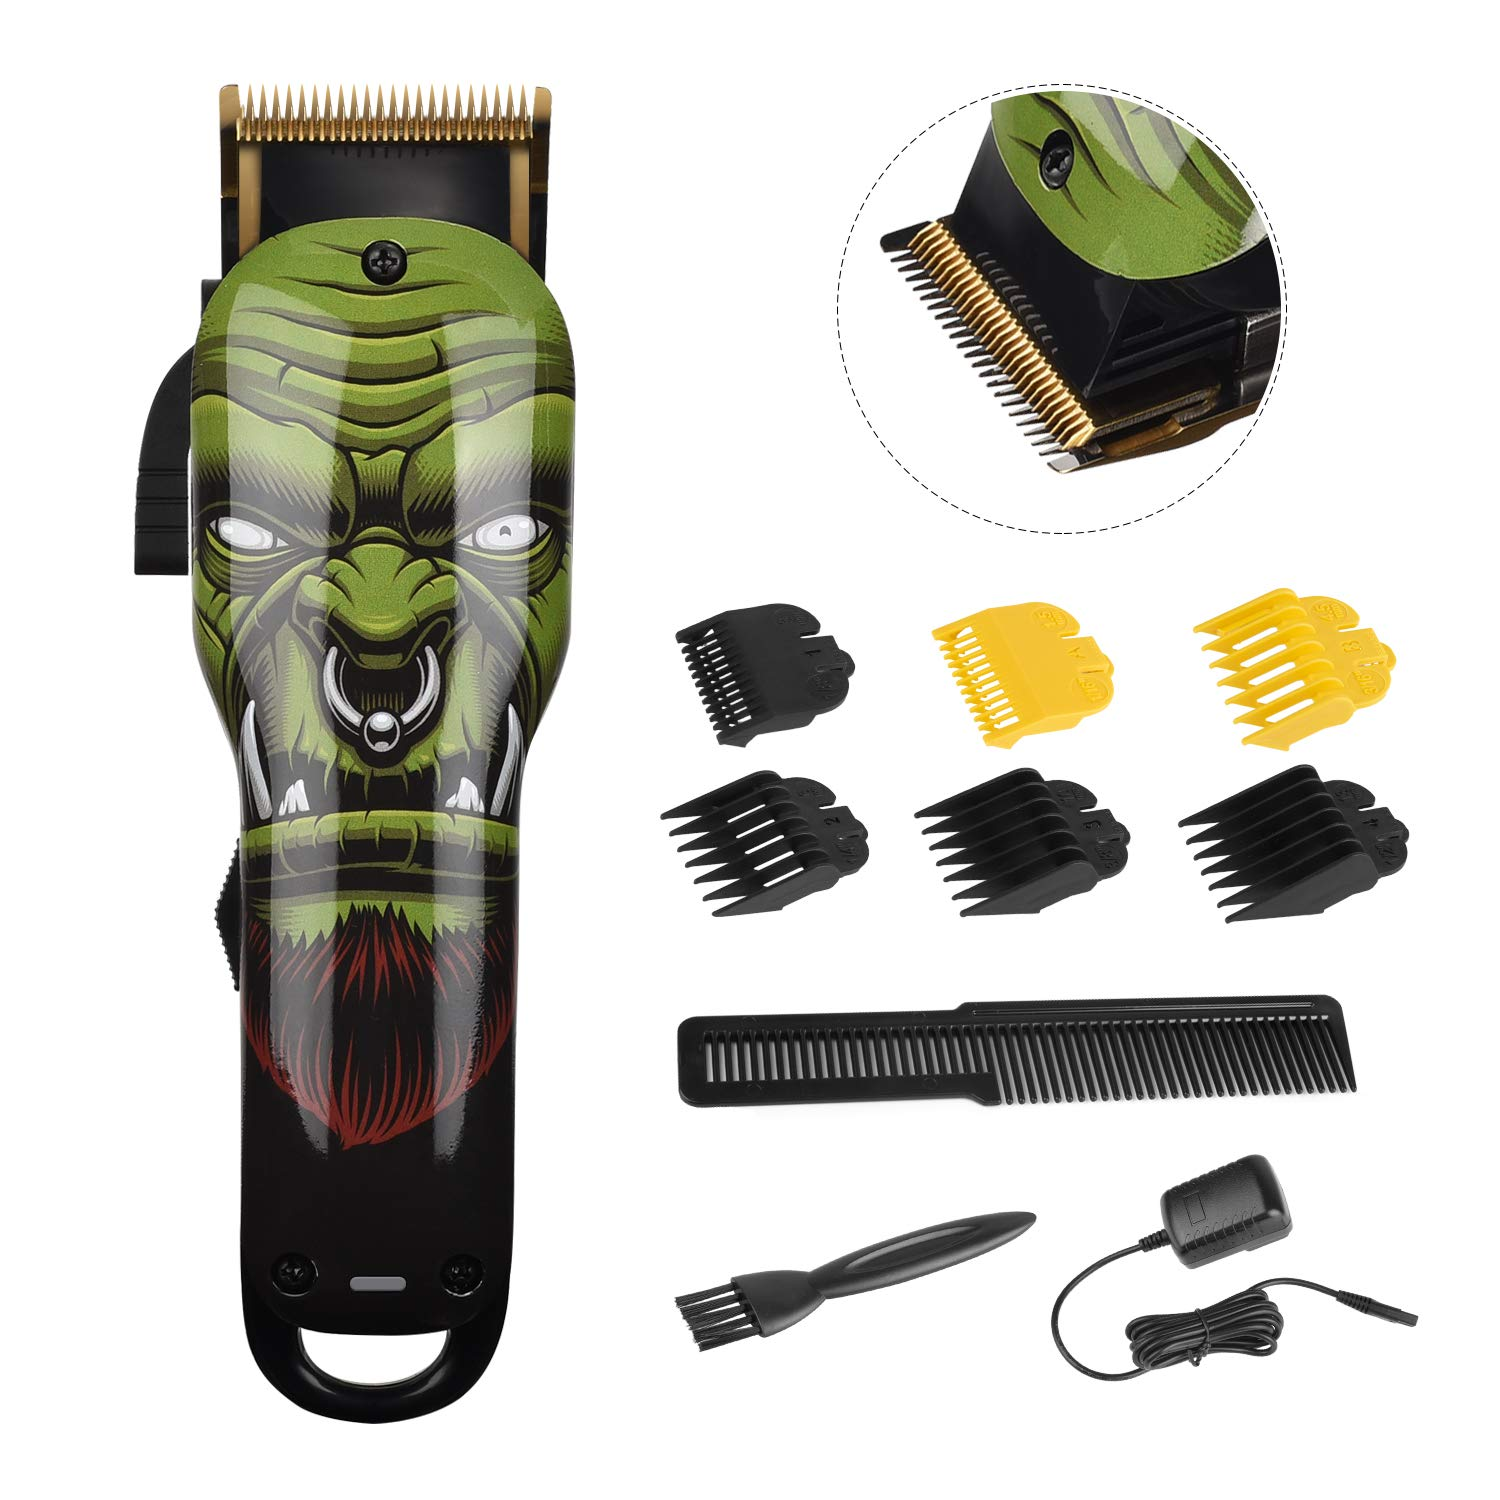 Love the Orc Face Design - Super Powerful and Quiet Hair Cutting Kit!